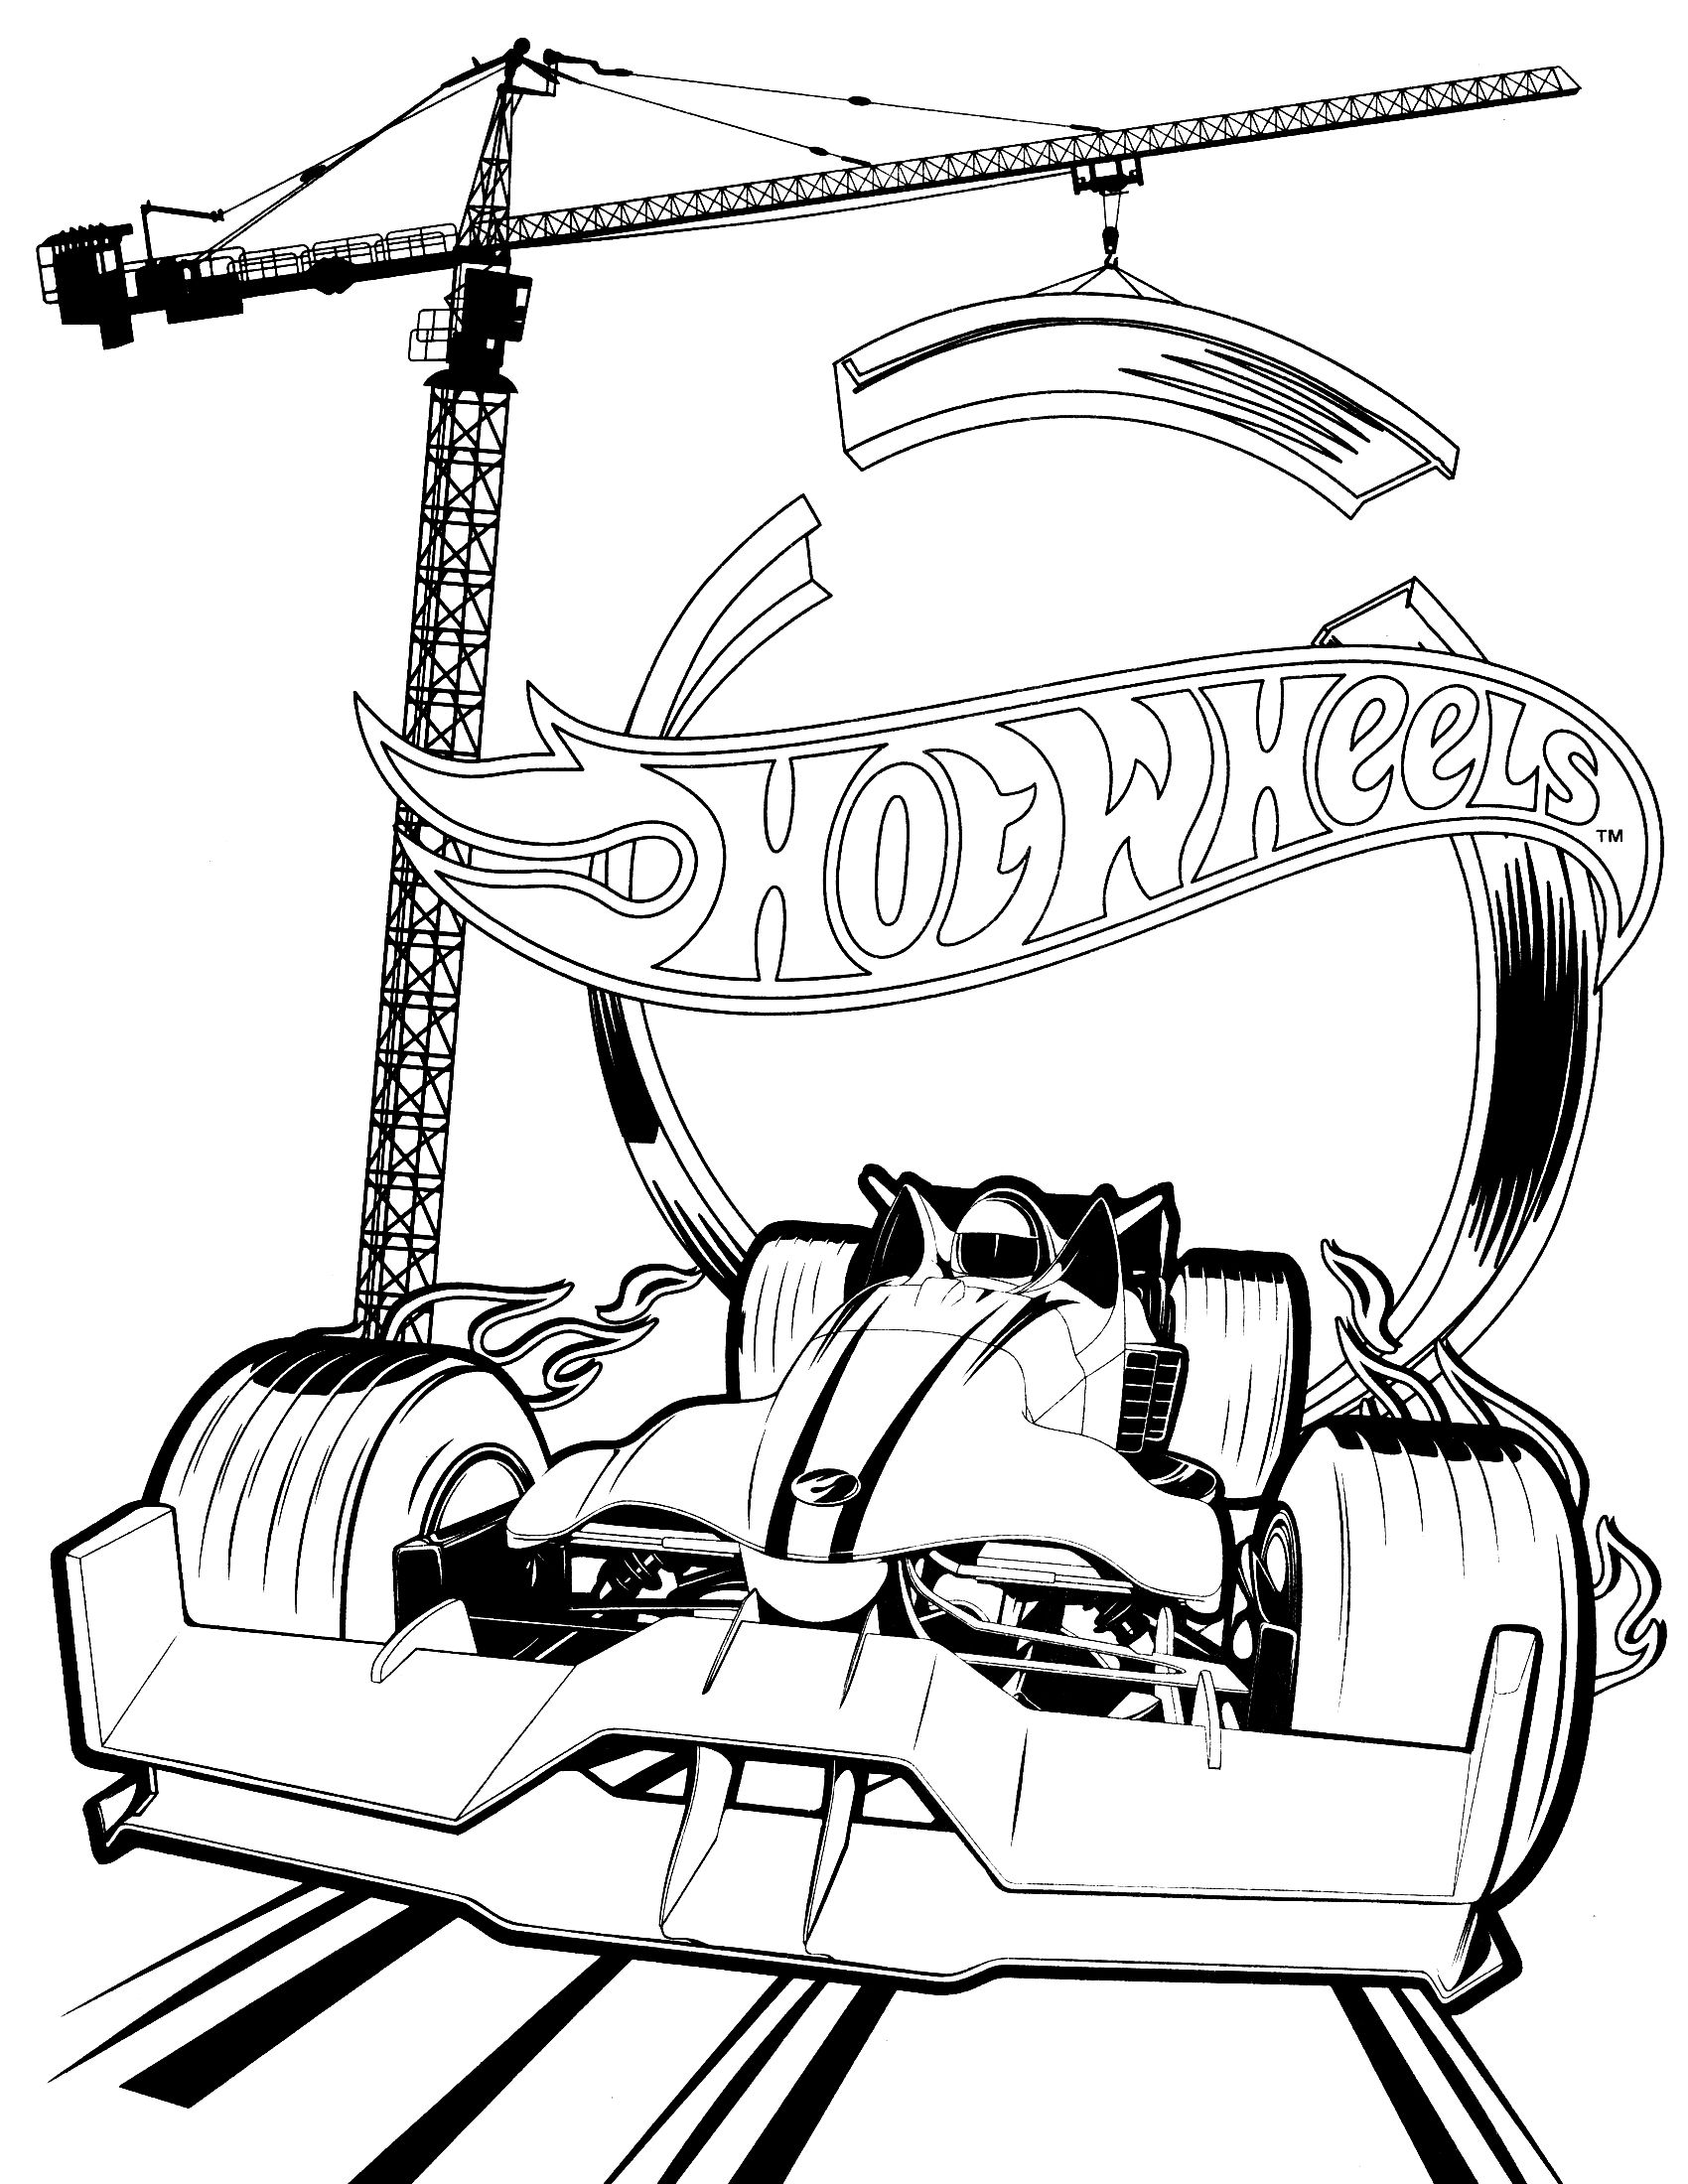 Team Hot Wheels Kleurplaten.Hot Wheels Coloring Page Kleurplaten Hot Wheels Birthday Hot